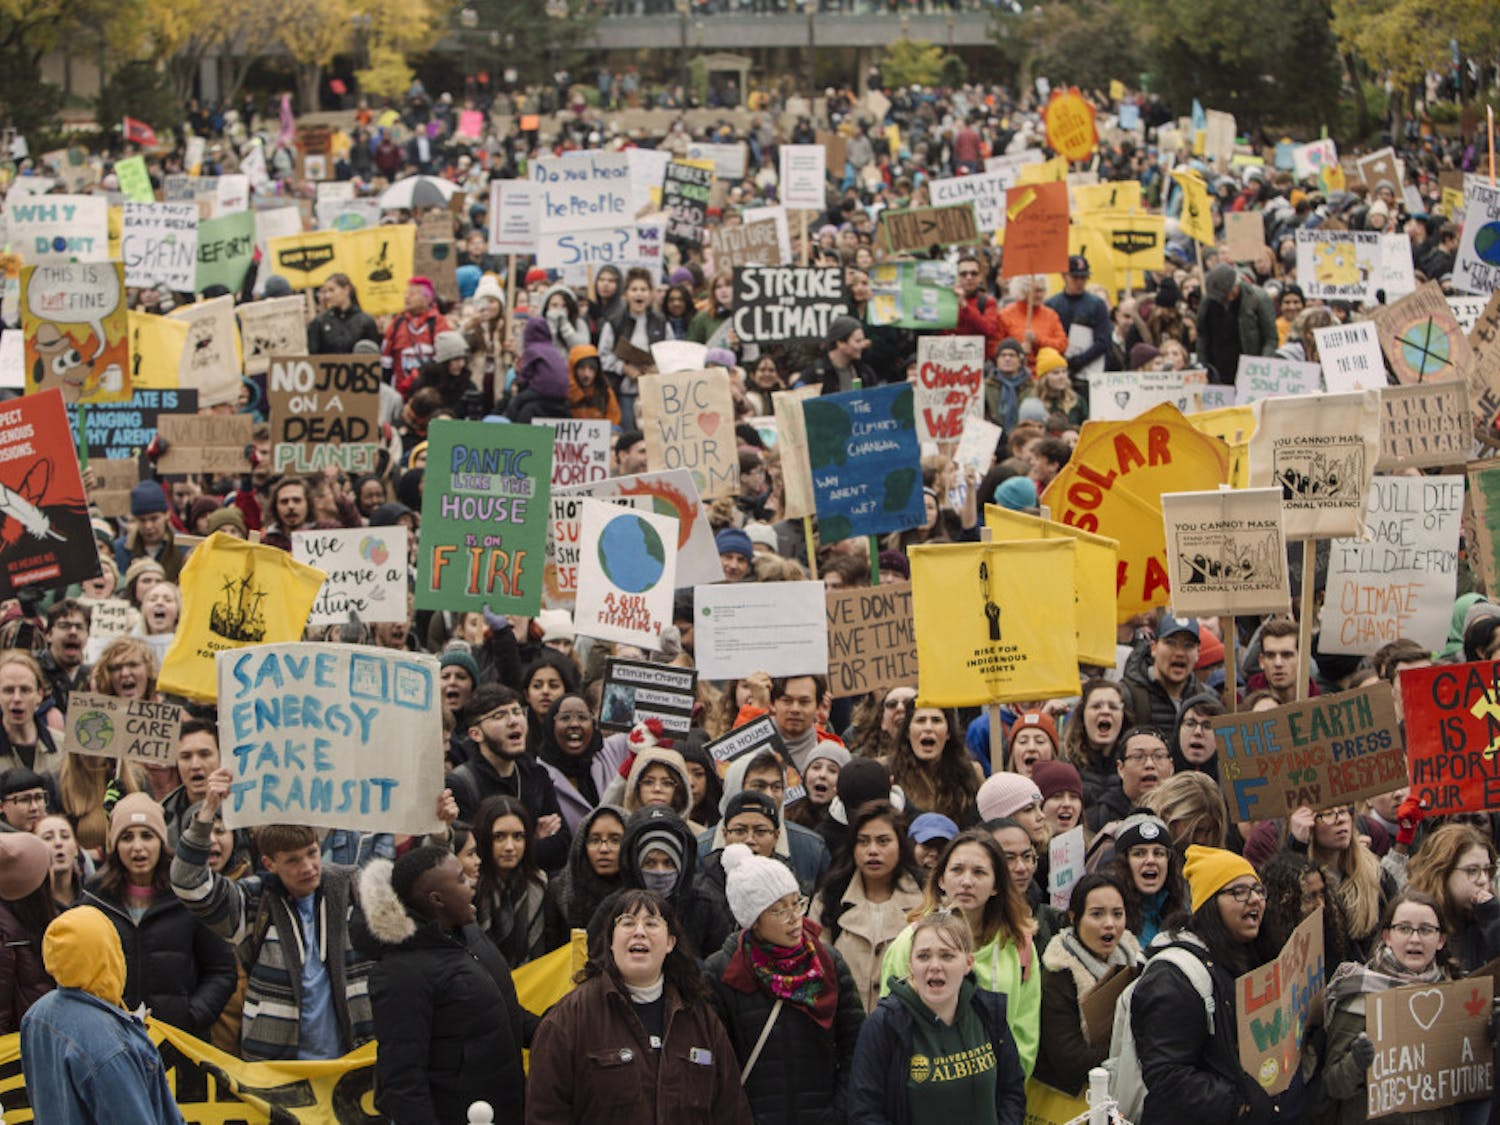 Marchers gather for the Climate Strike in Edmonton, Alberta, on Friday, Sept. 27, 2019. (Amber Bracken/The Canadian Press via AP)